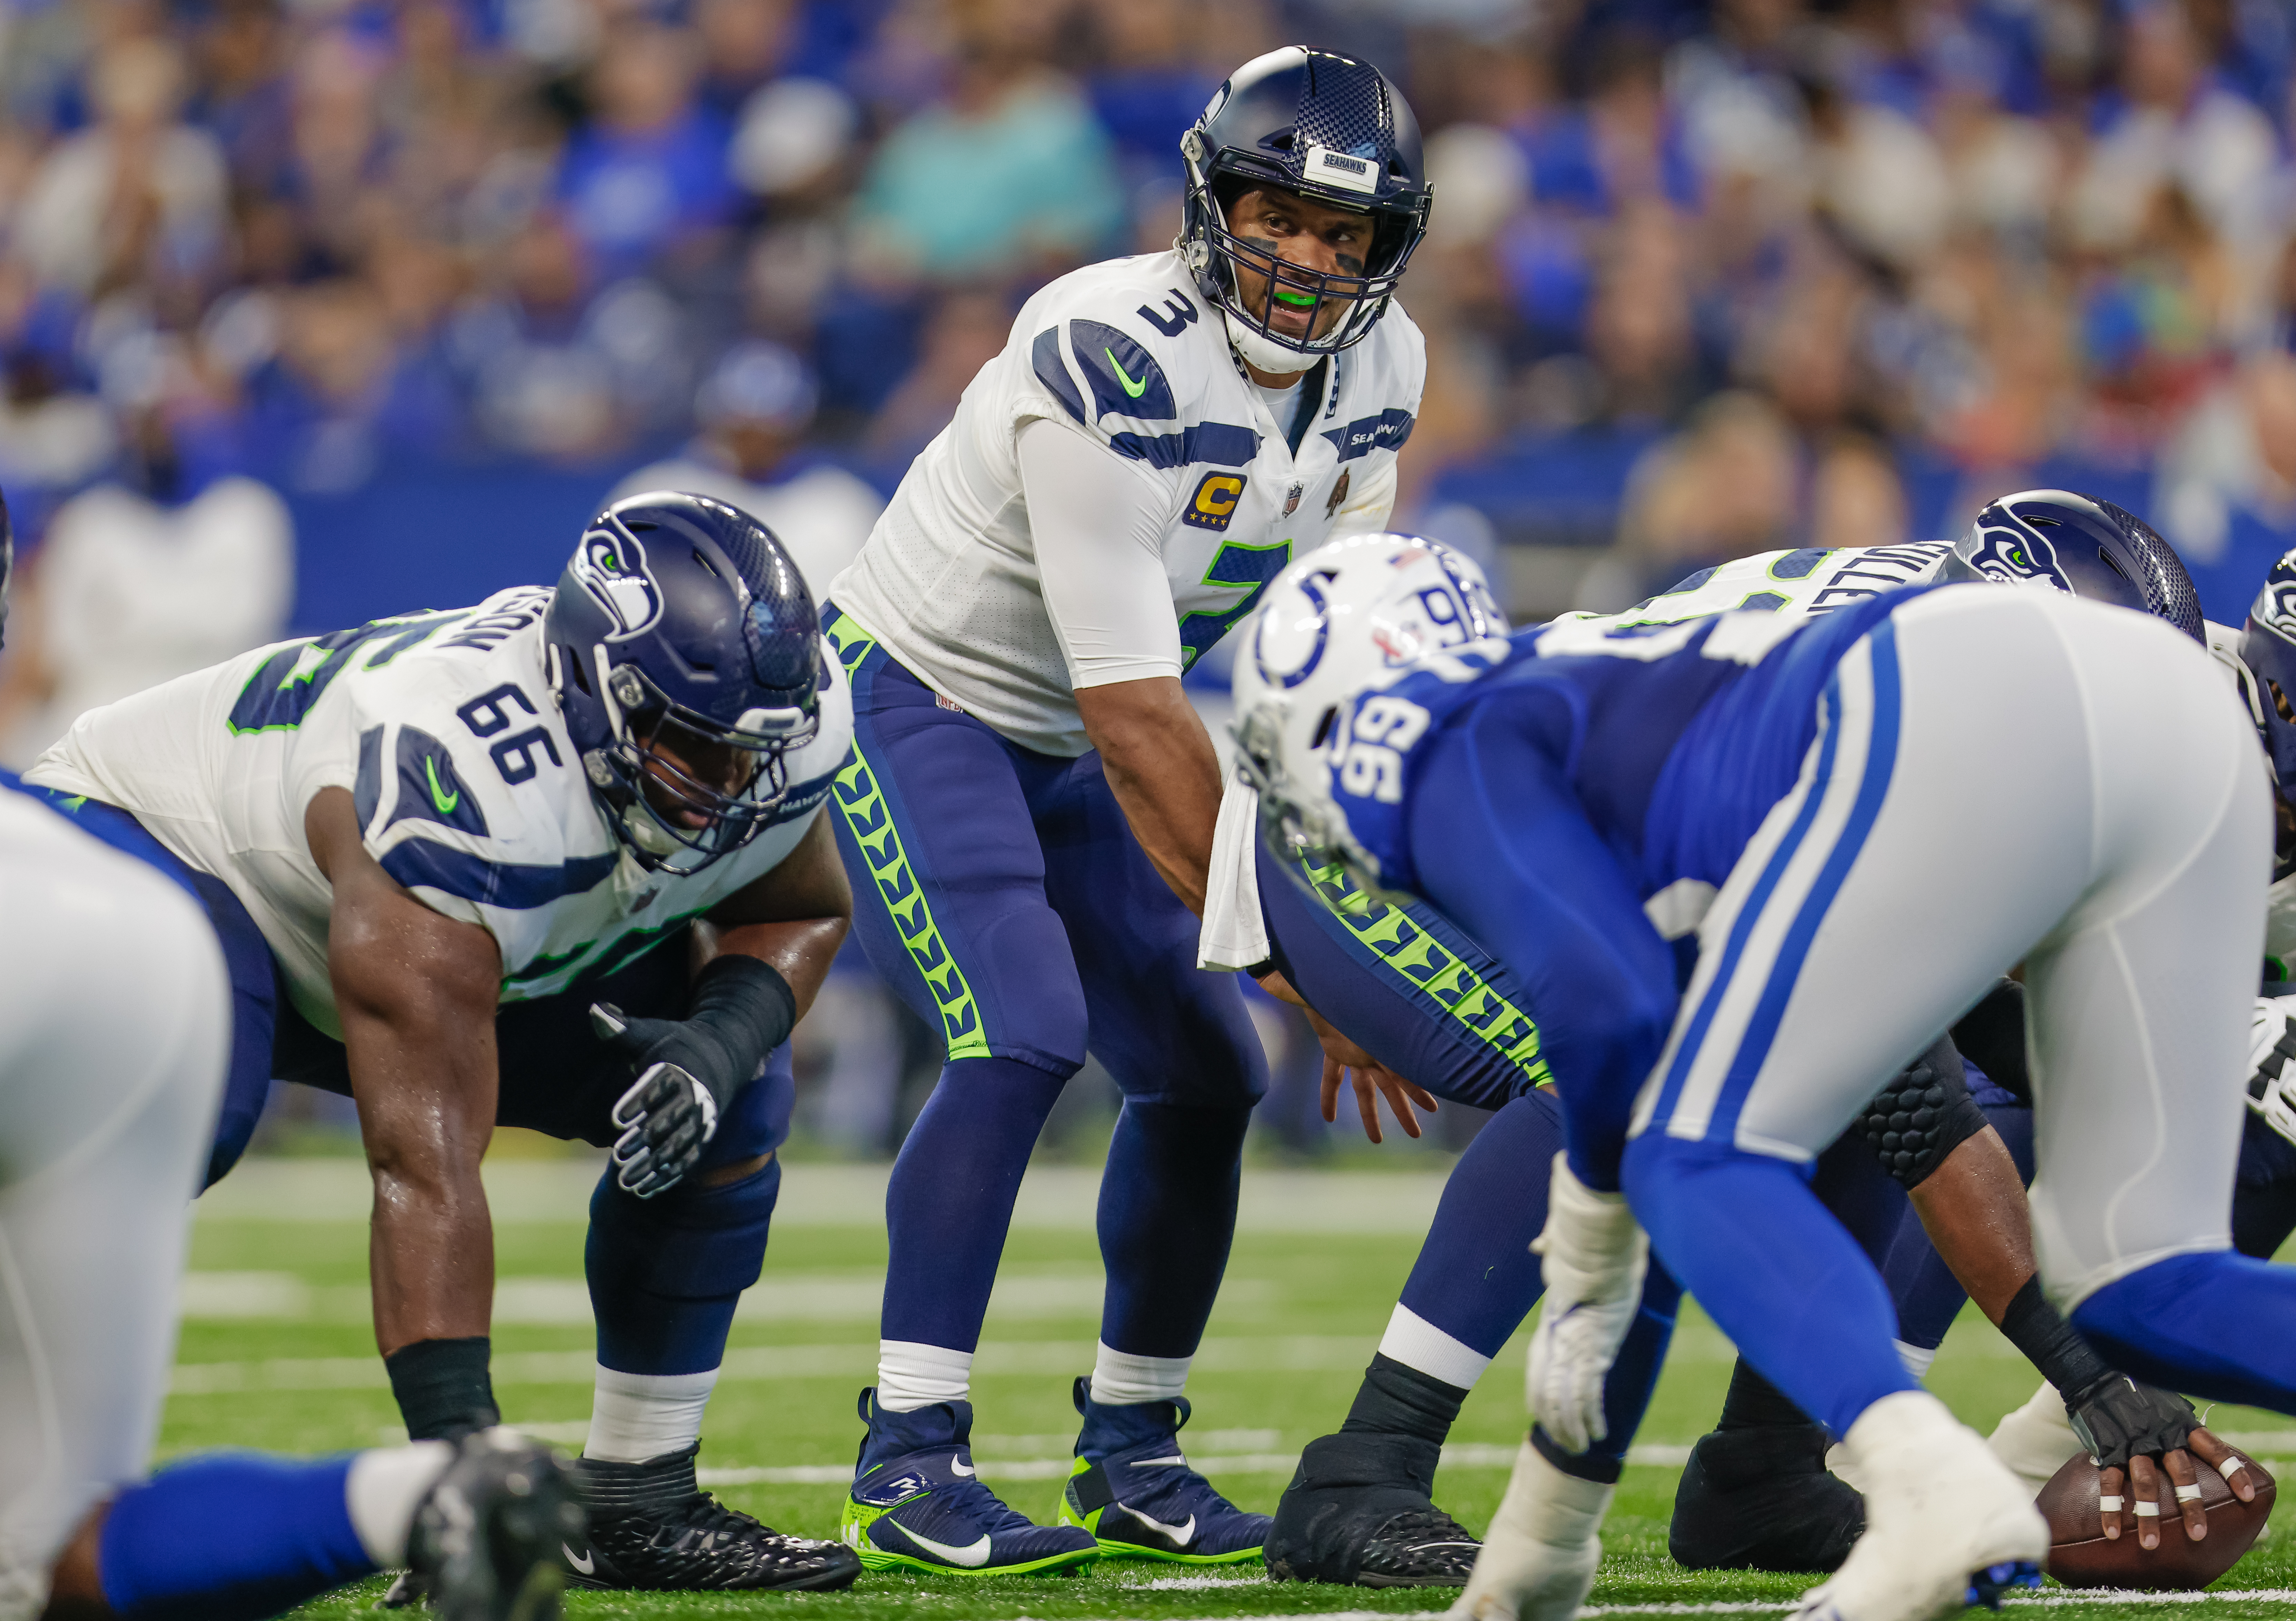 Russell Wilson #3 of the Seattle Seahawks is seen during the game against the Indianapolis Colts at Lucas Oil Stadium on September 12, 2021 in Indianapolis, Indiana.